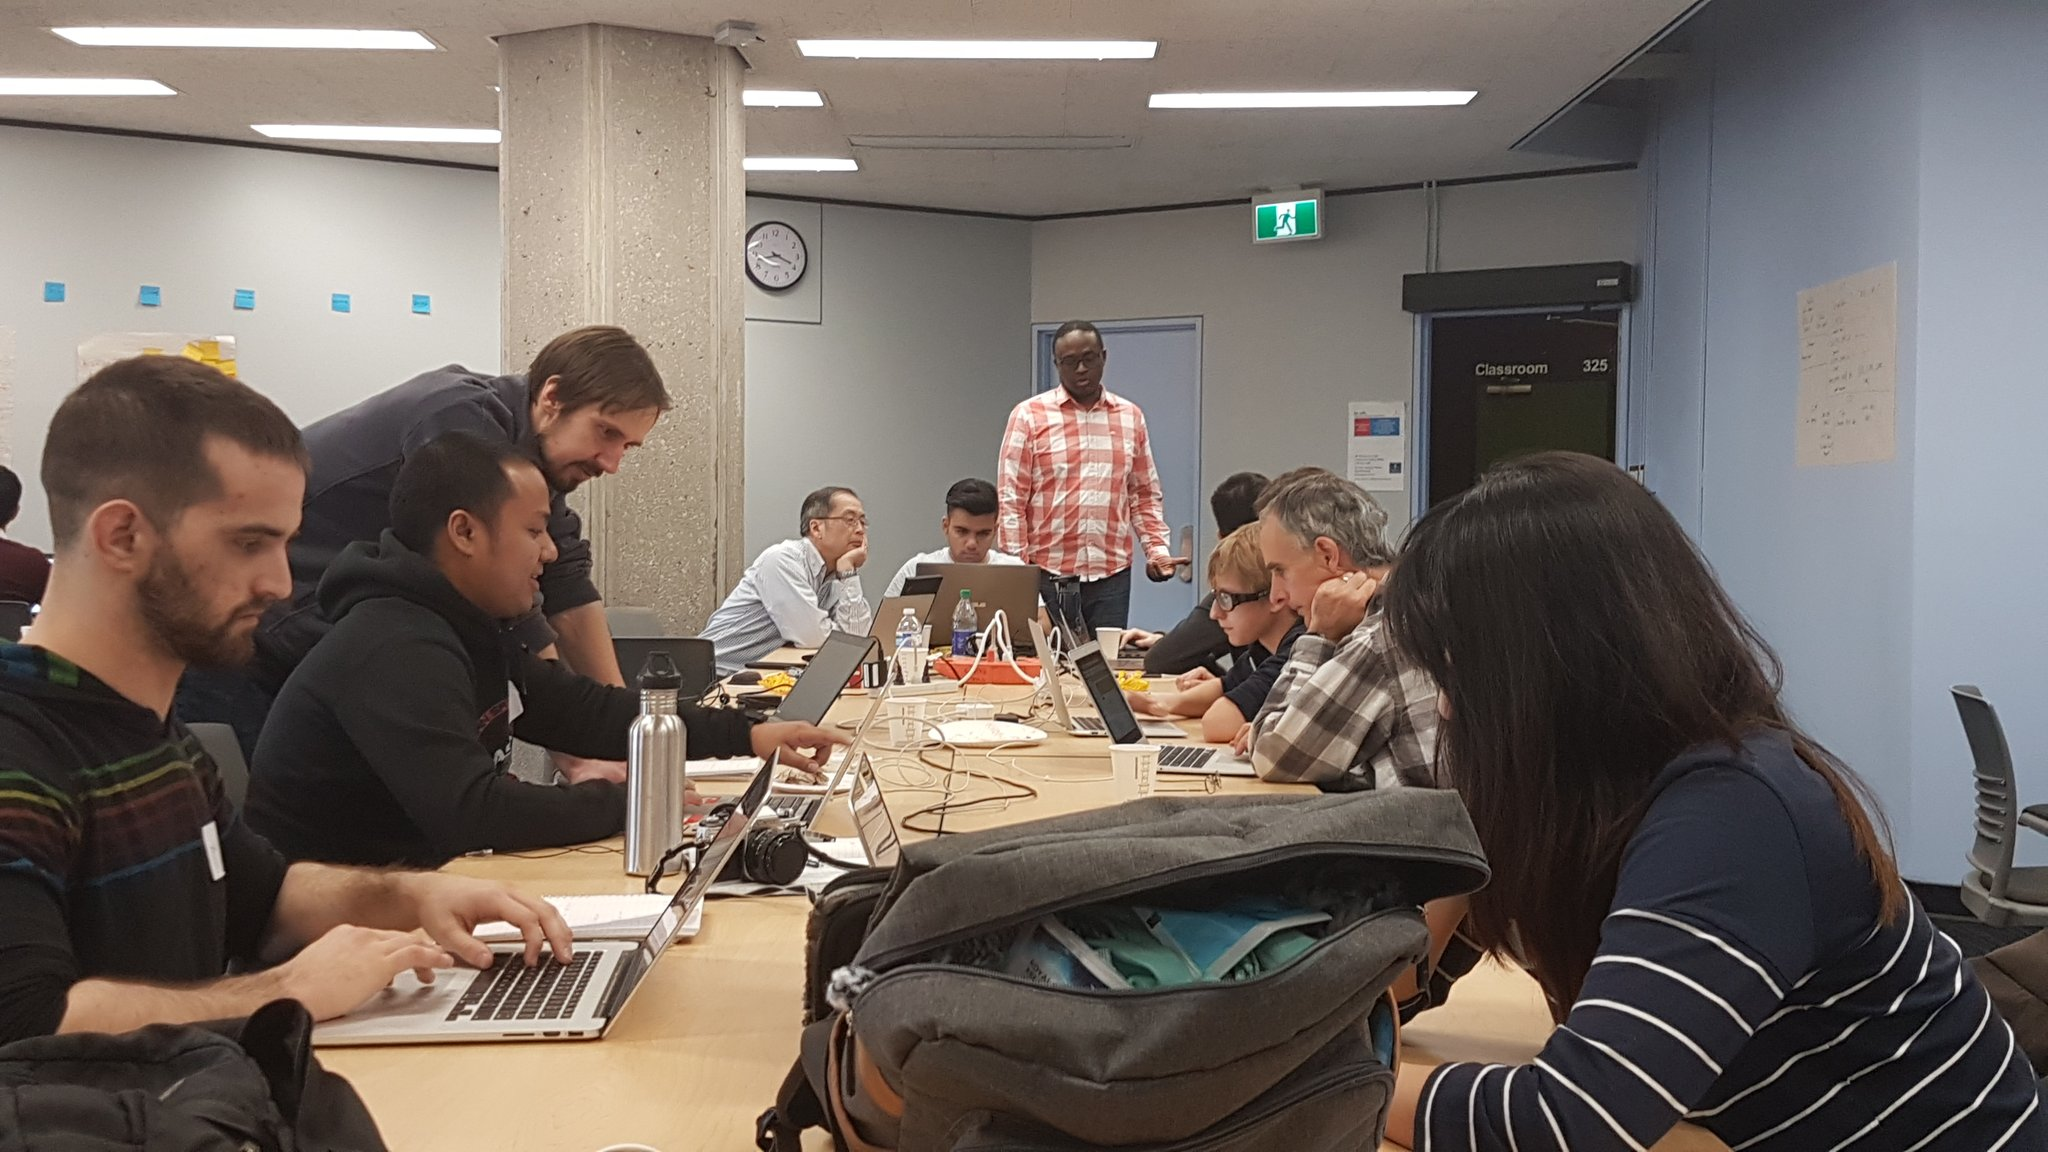 """Overheard at #CodeAcrossTO : """"There will be a last minute scramble, but we'll be ready to go when it's time."""" #digitalpathway #onpoli https://t.co/HtOB5vANyT"""